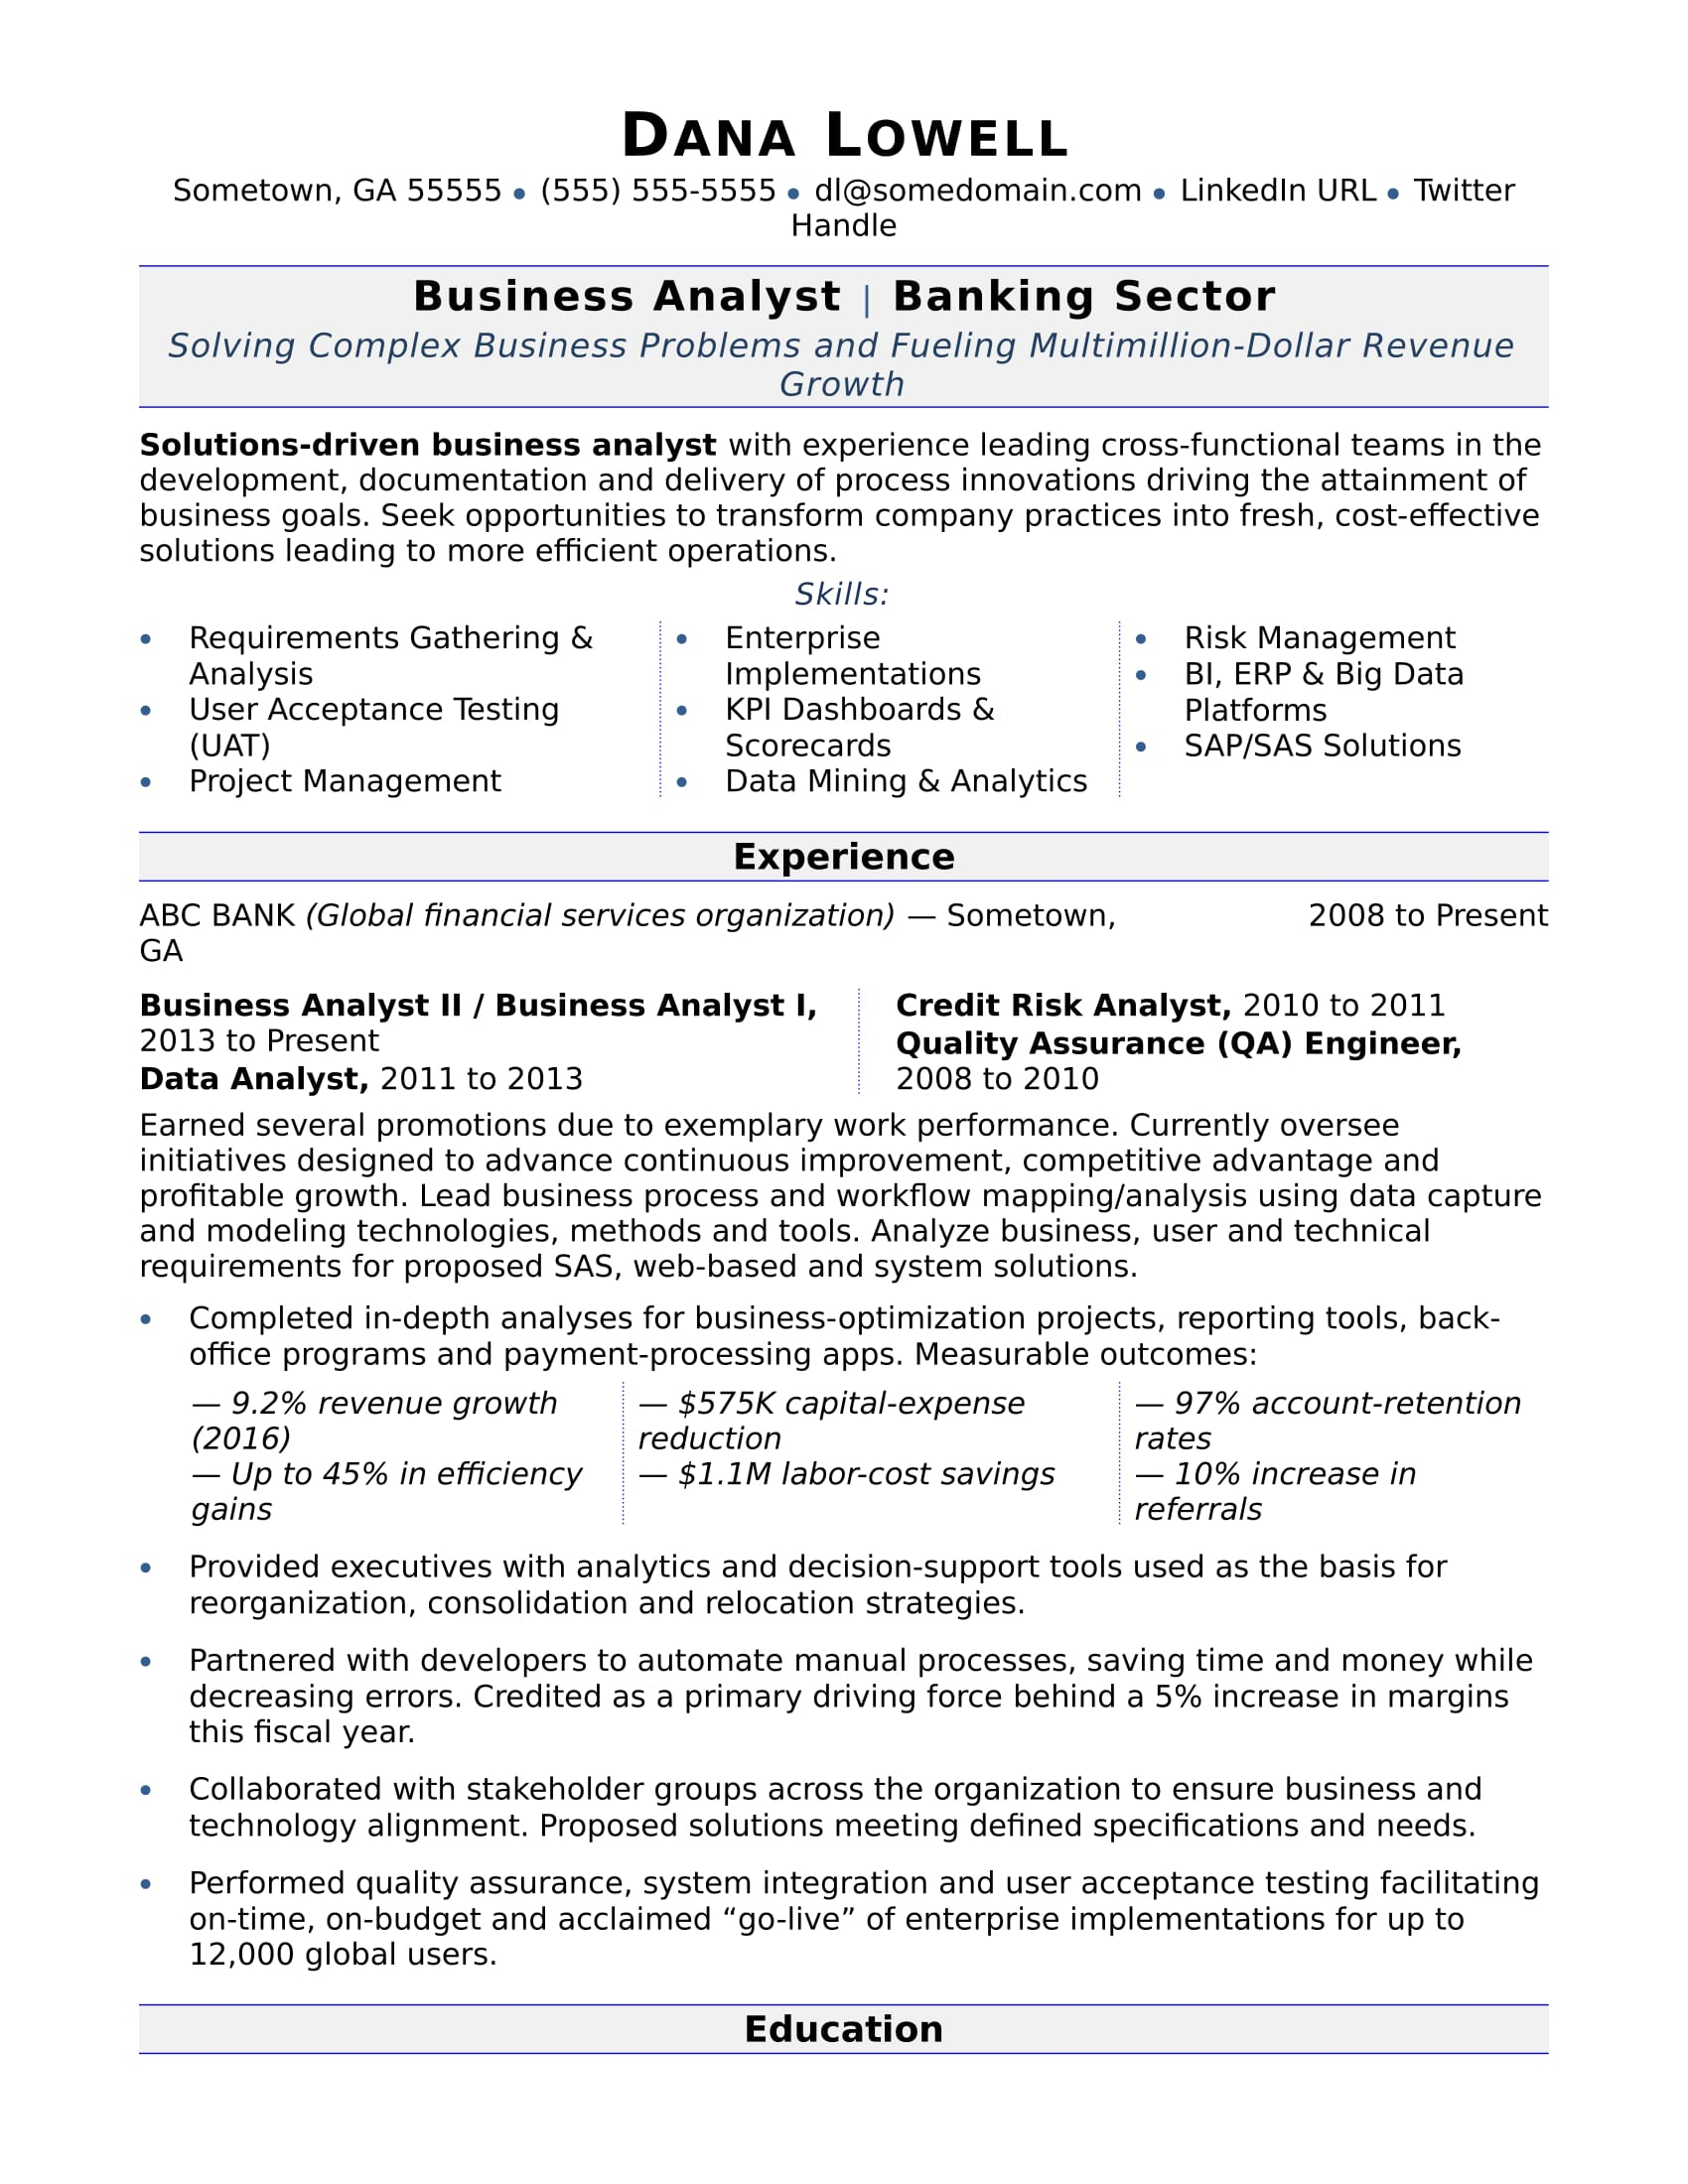 data analyst sample resume in banking